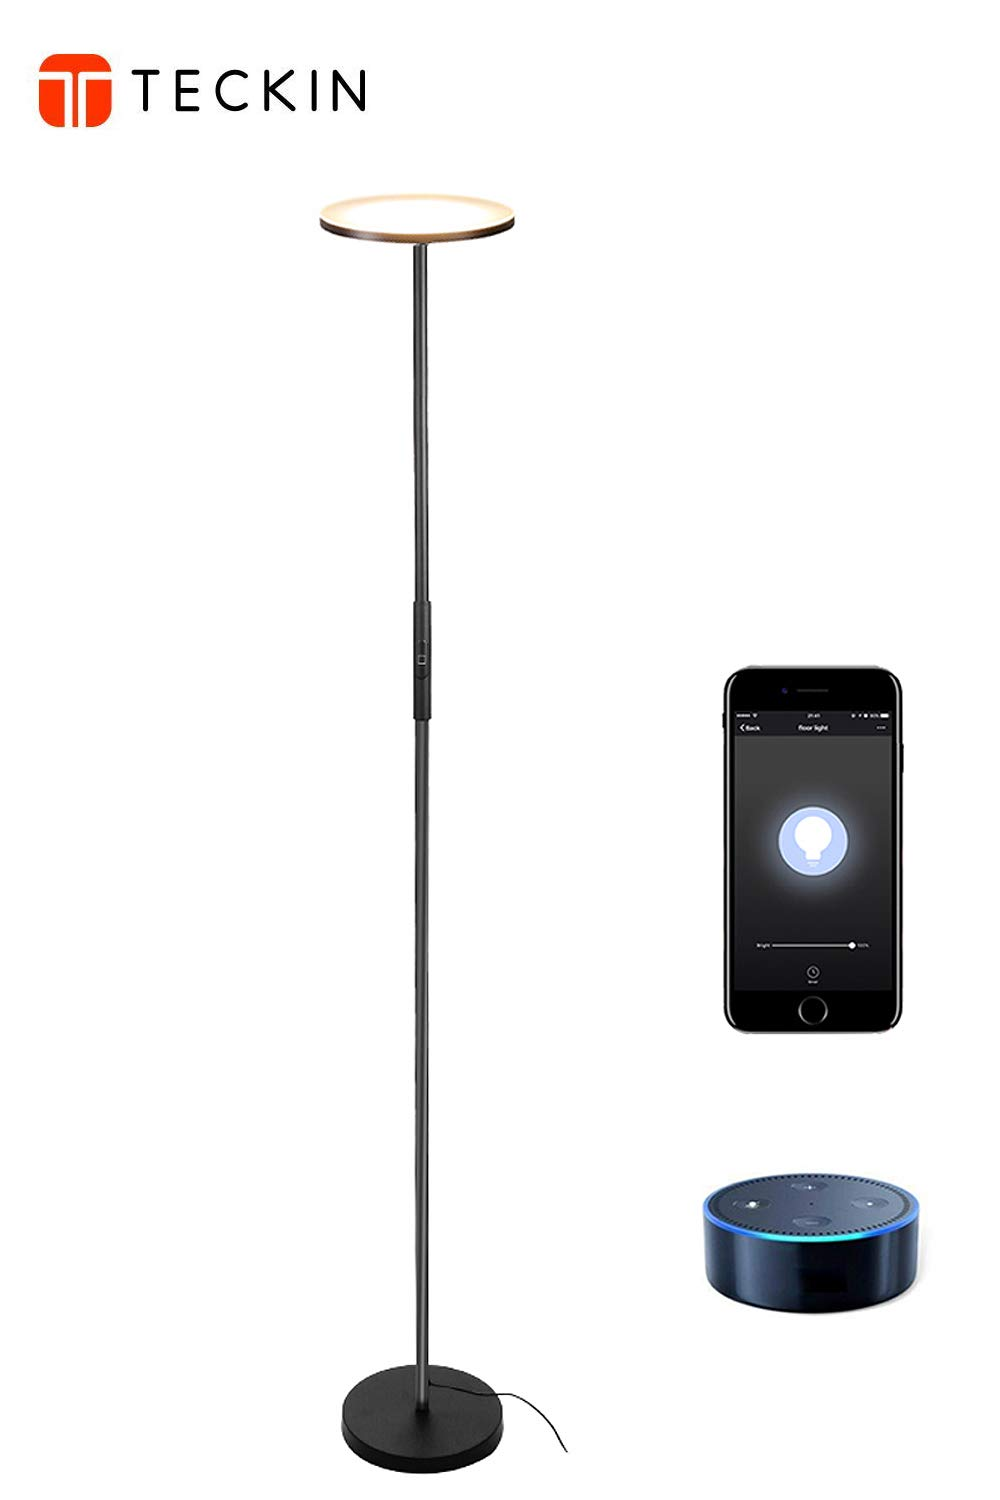 LED Torchiere Floor Lamp, TECKIN Wifi Smart Uplight Dimmable Floor lamps Compatible with  Alexa Google Home, Tall Standing Modern Pole Light Enabled Remote Control for Living Rooms & Offices-Black T TECKIN FL41